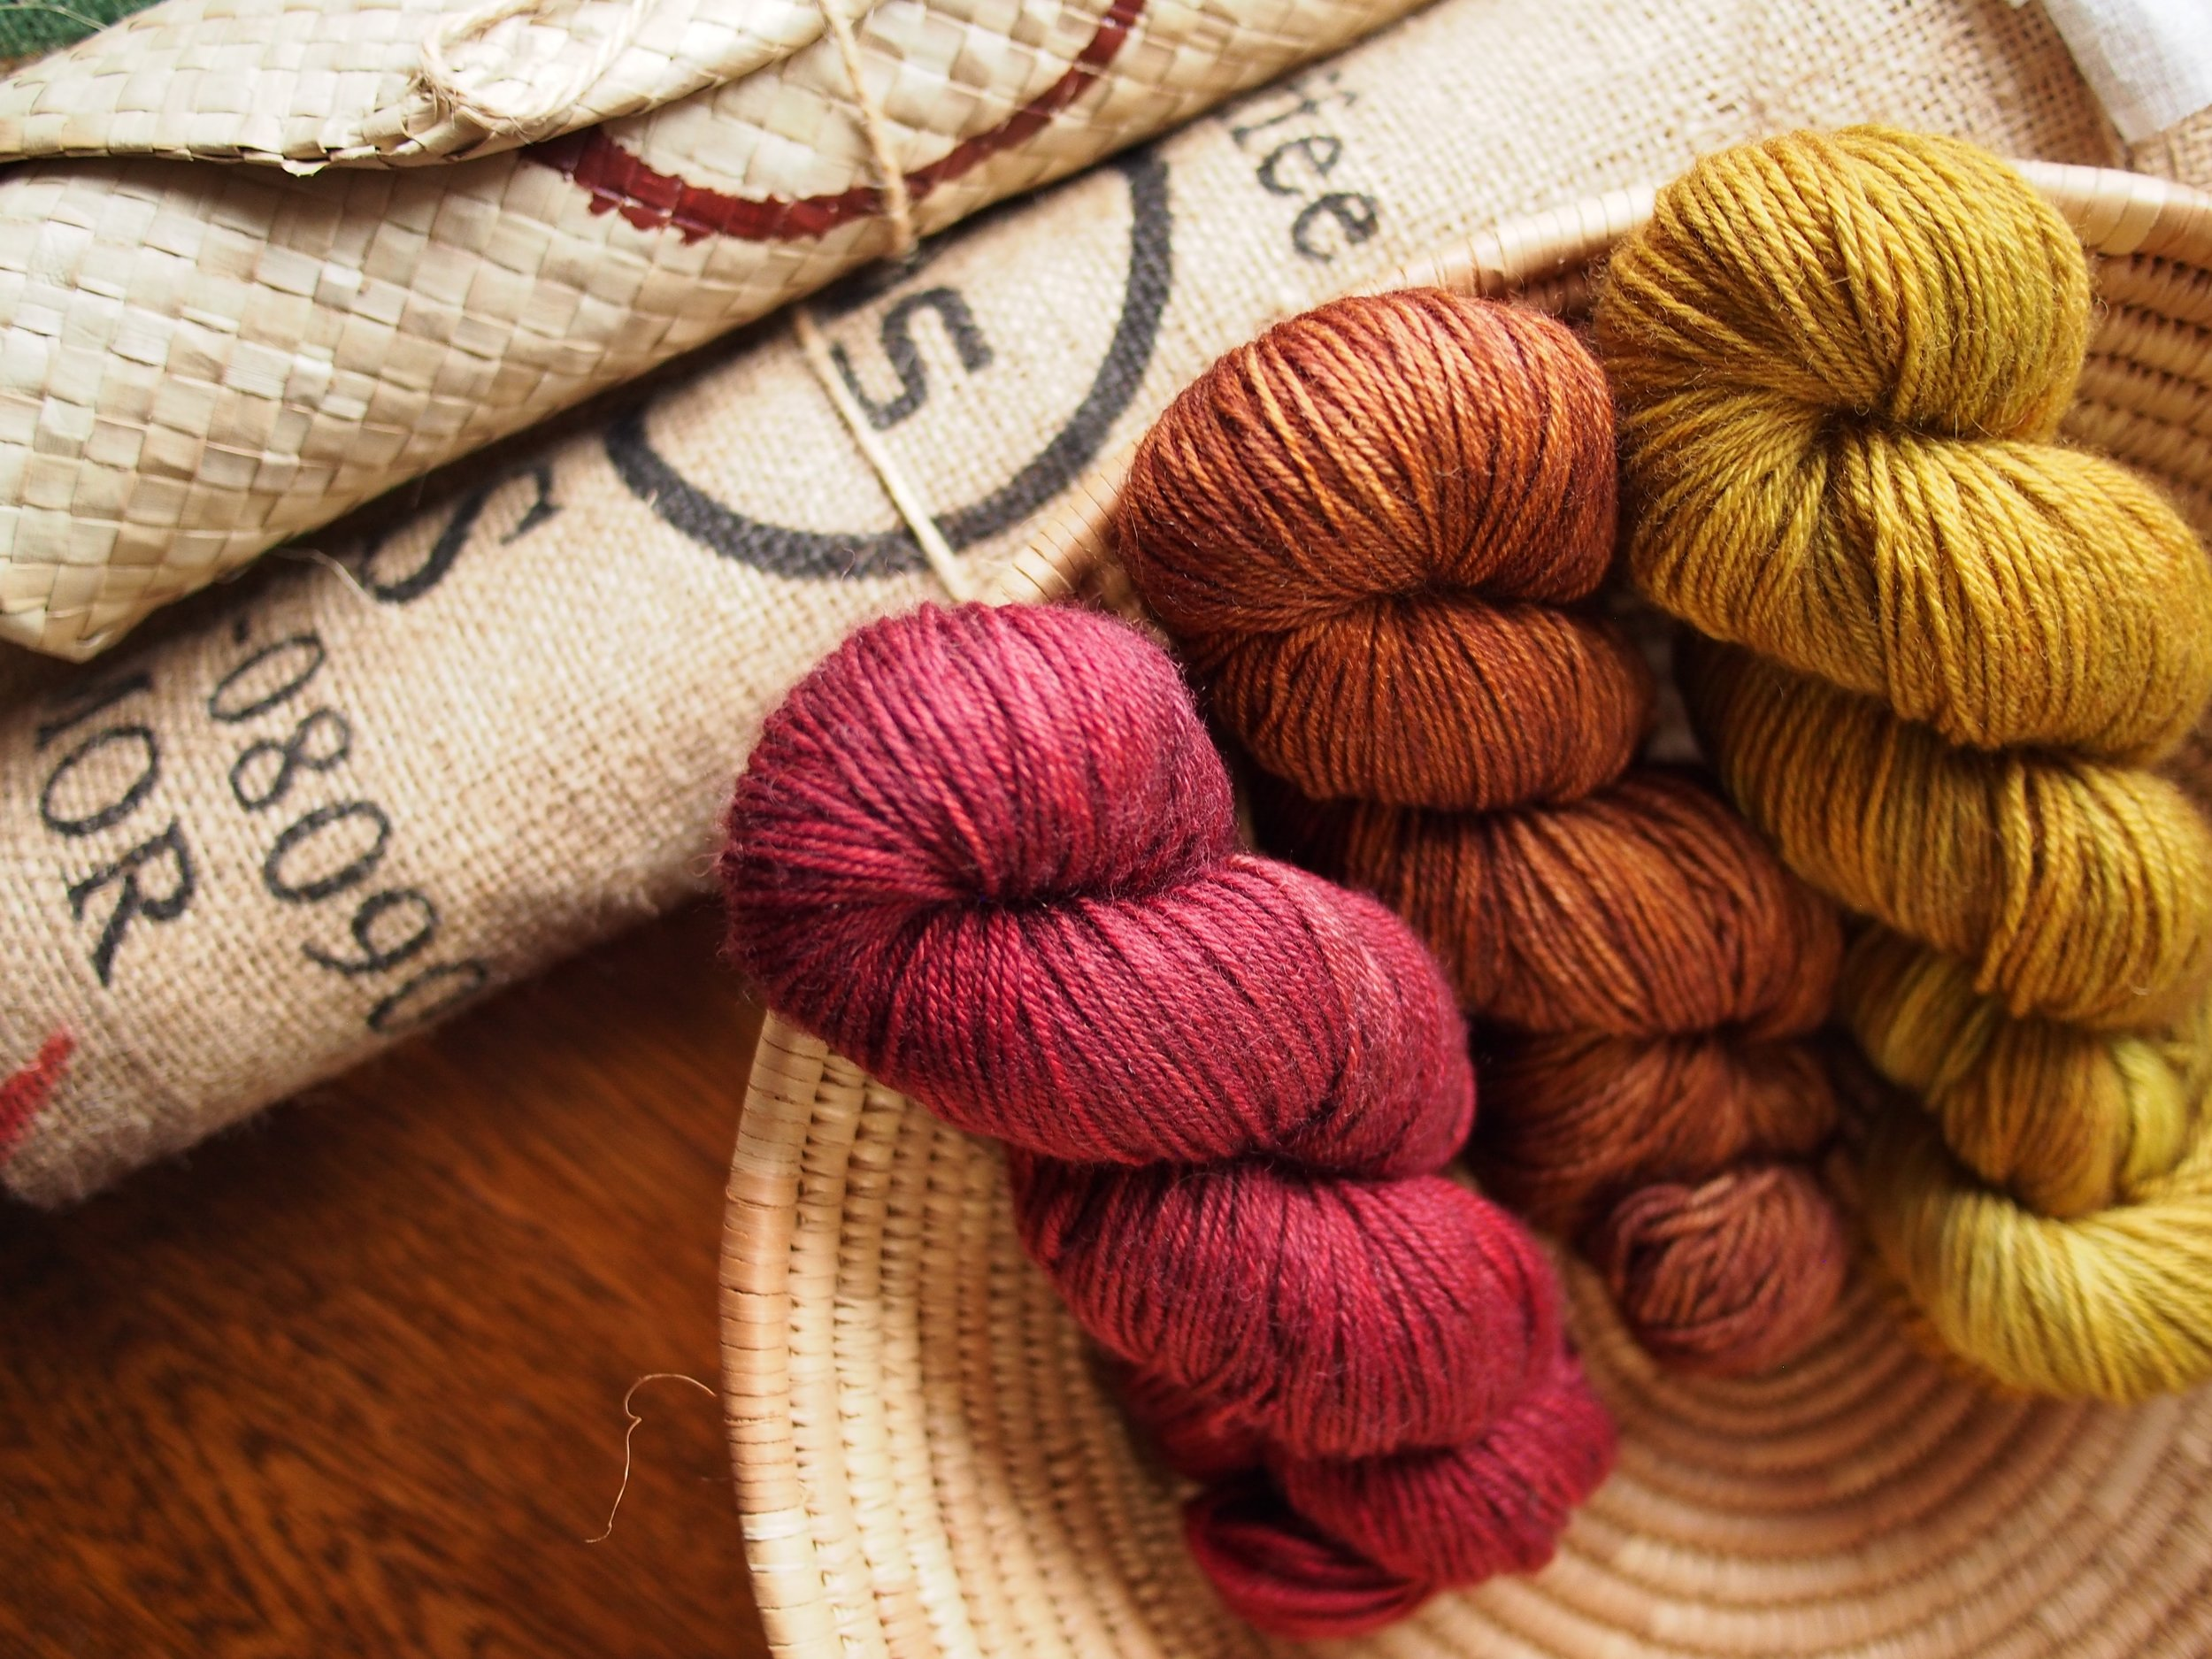 British Blue-Faced Leicester Wool - Our lustrous blue-faced leicester yarns are sourced from the finest fleeces grown in Yorkshire, UK. Additionally, scoured and spun in Yorkshire, these yarns are imbued with a real northern English charm.Dyed in our semi-solid and tonal shades, our BFL yarns are both vibrant and luminous. The soft, draping nature of BFL makes these yarns ideal for lacework shawls, yet robust enough for cables and cardigans alike.100% British blue-faced leicester wool8ply/DK 225m per 100g (superwash-treated)4ply/fingering 400m per 100g (superwash-treated)2ply/lace 800m per 100g (hand-wash only)